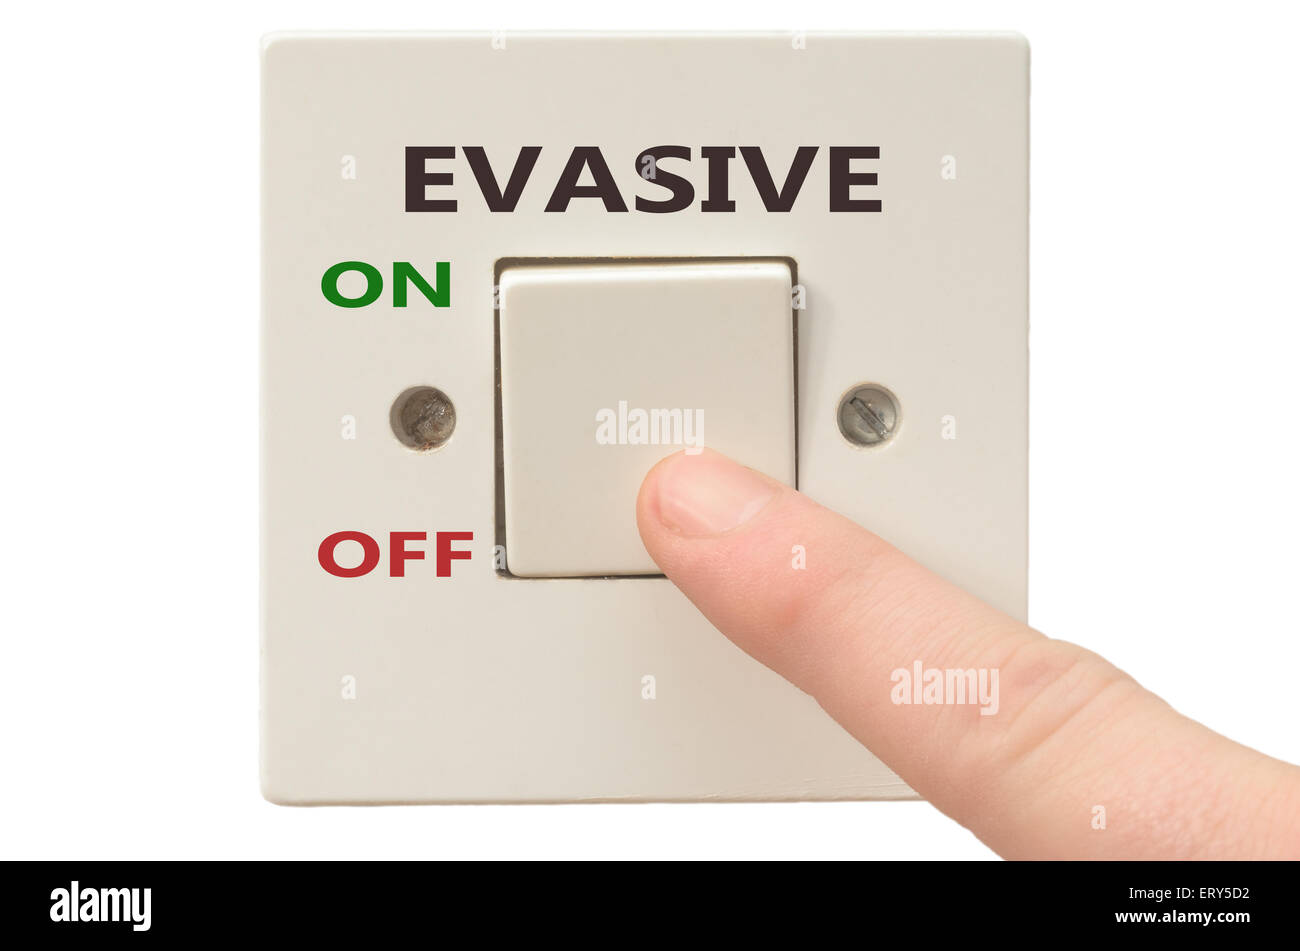 Turning off Evasive with finger on electrical switch - Stock Image